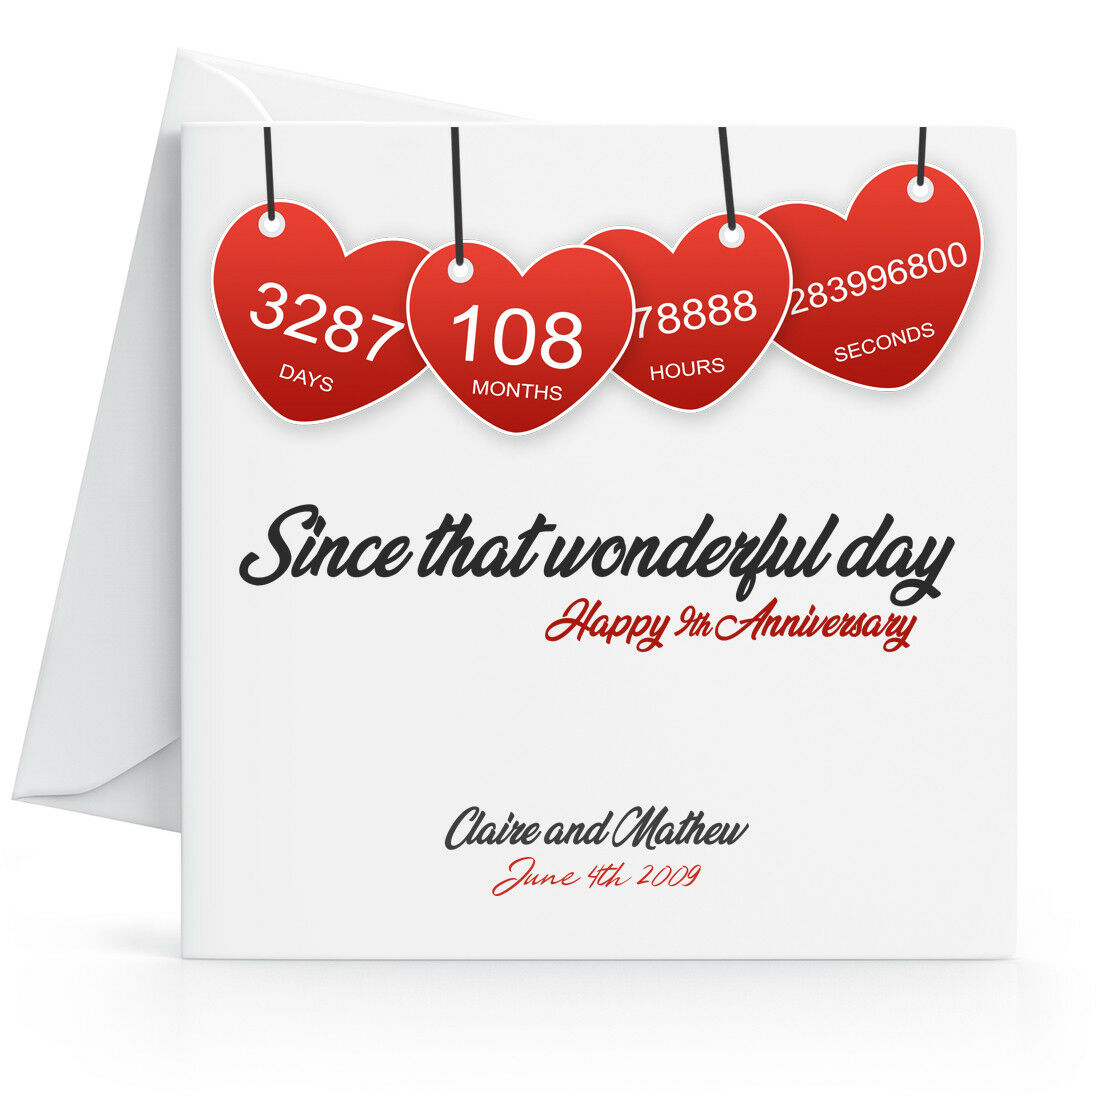 Details about Personalised 10th Wedding Anniversary Card with Printed Red  Hearts - Ninth